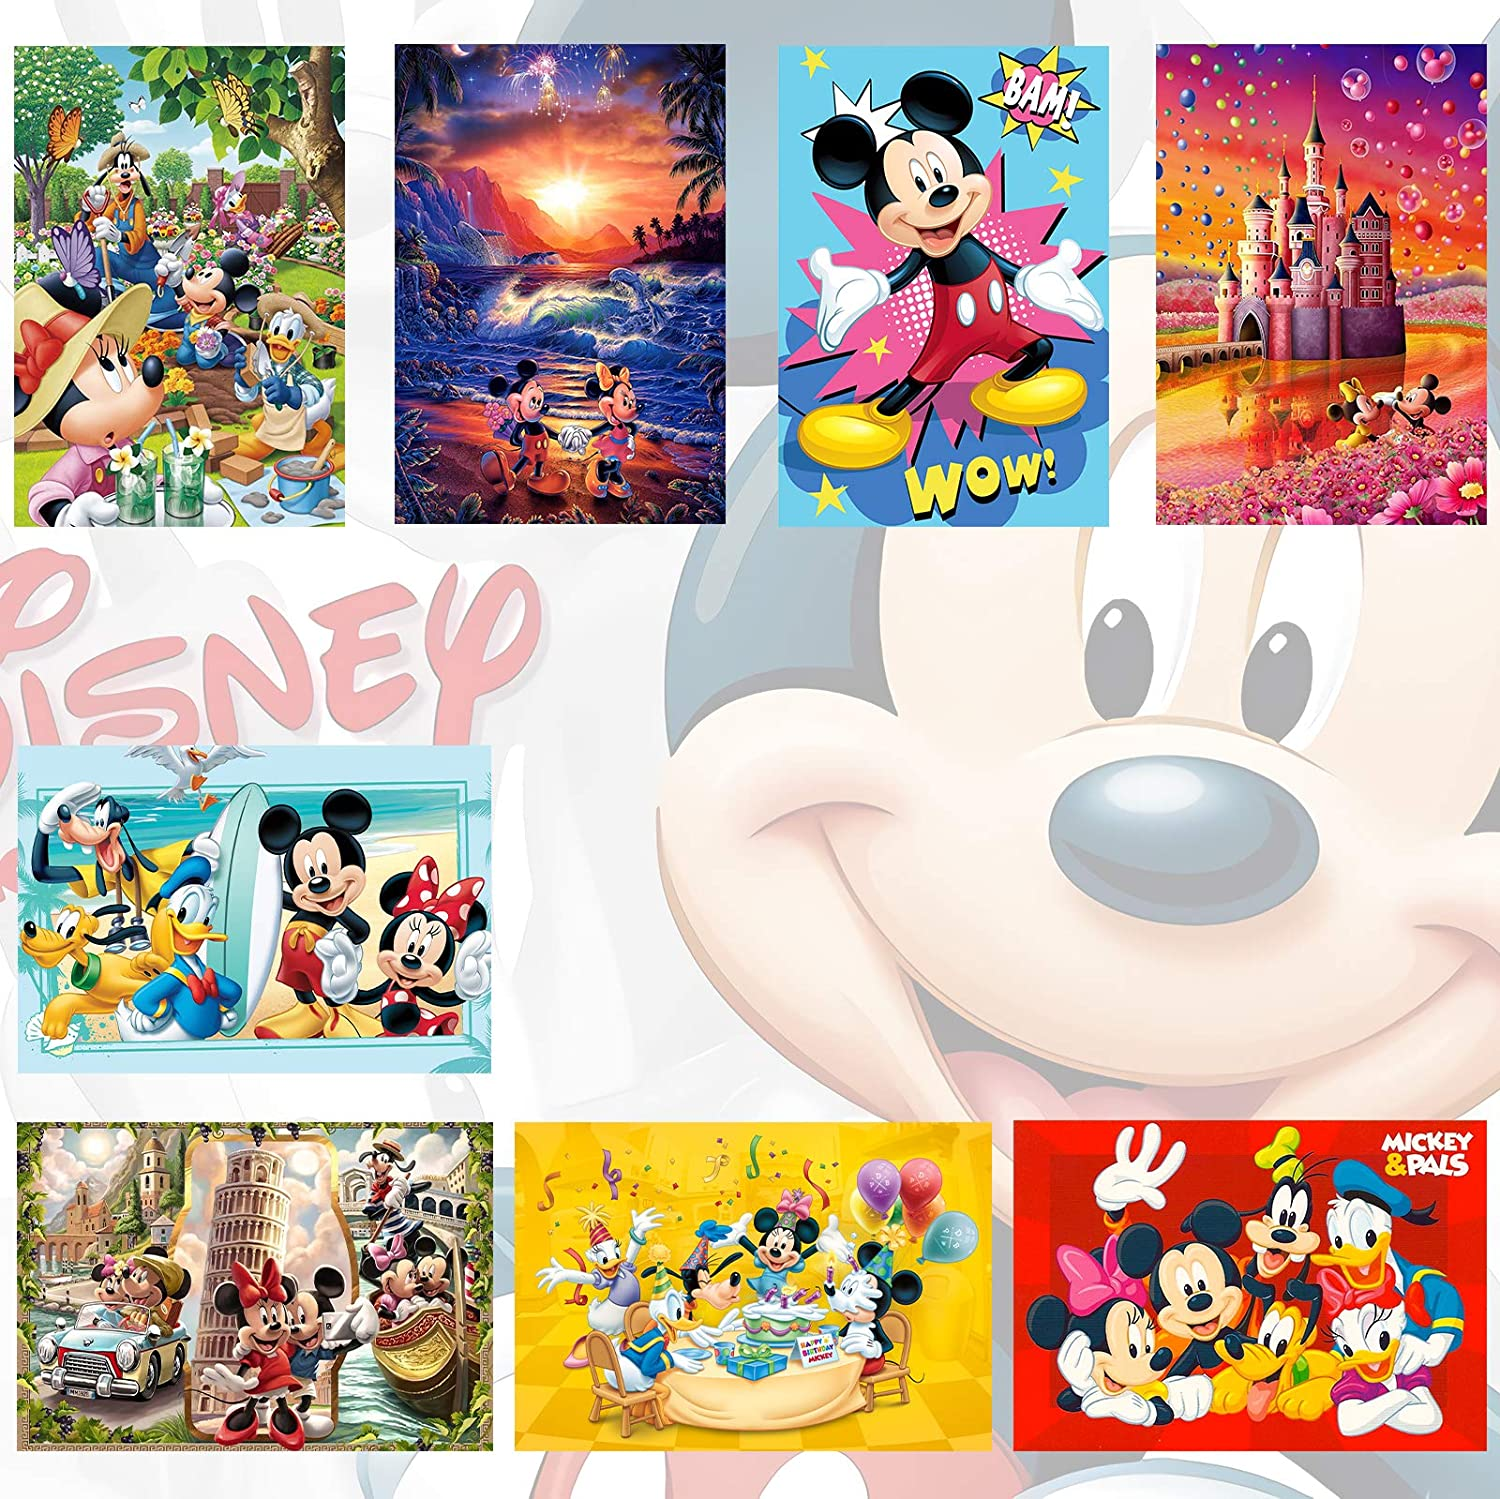 Mic-key Mouse Poster Cute Wall Art Children Room Decor Set of 8 for Bedroom Home 11.4